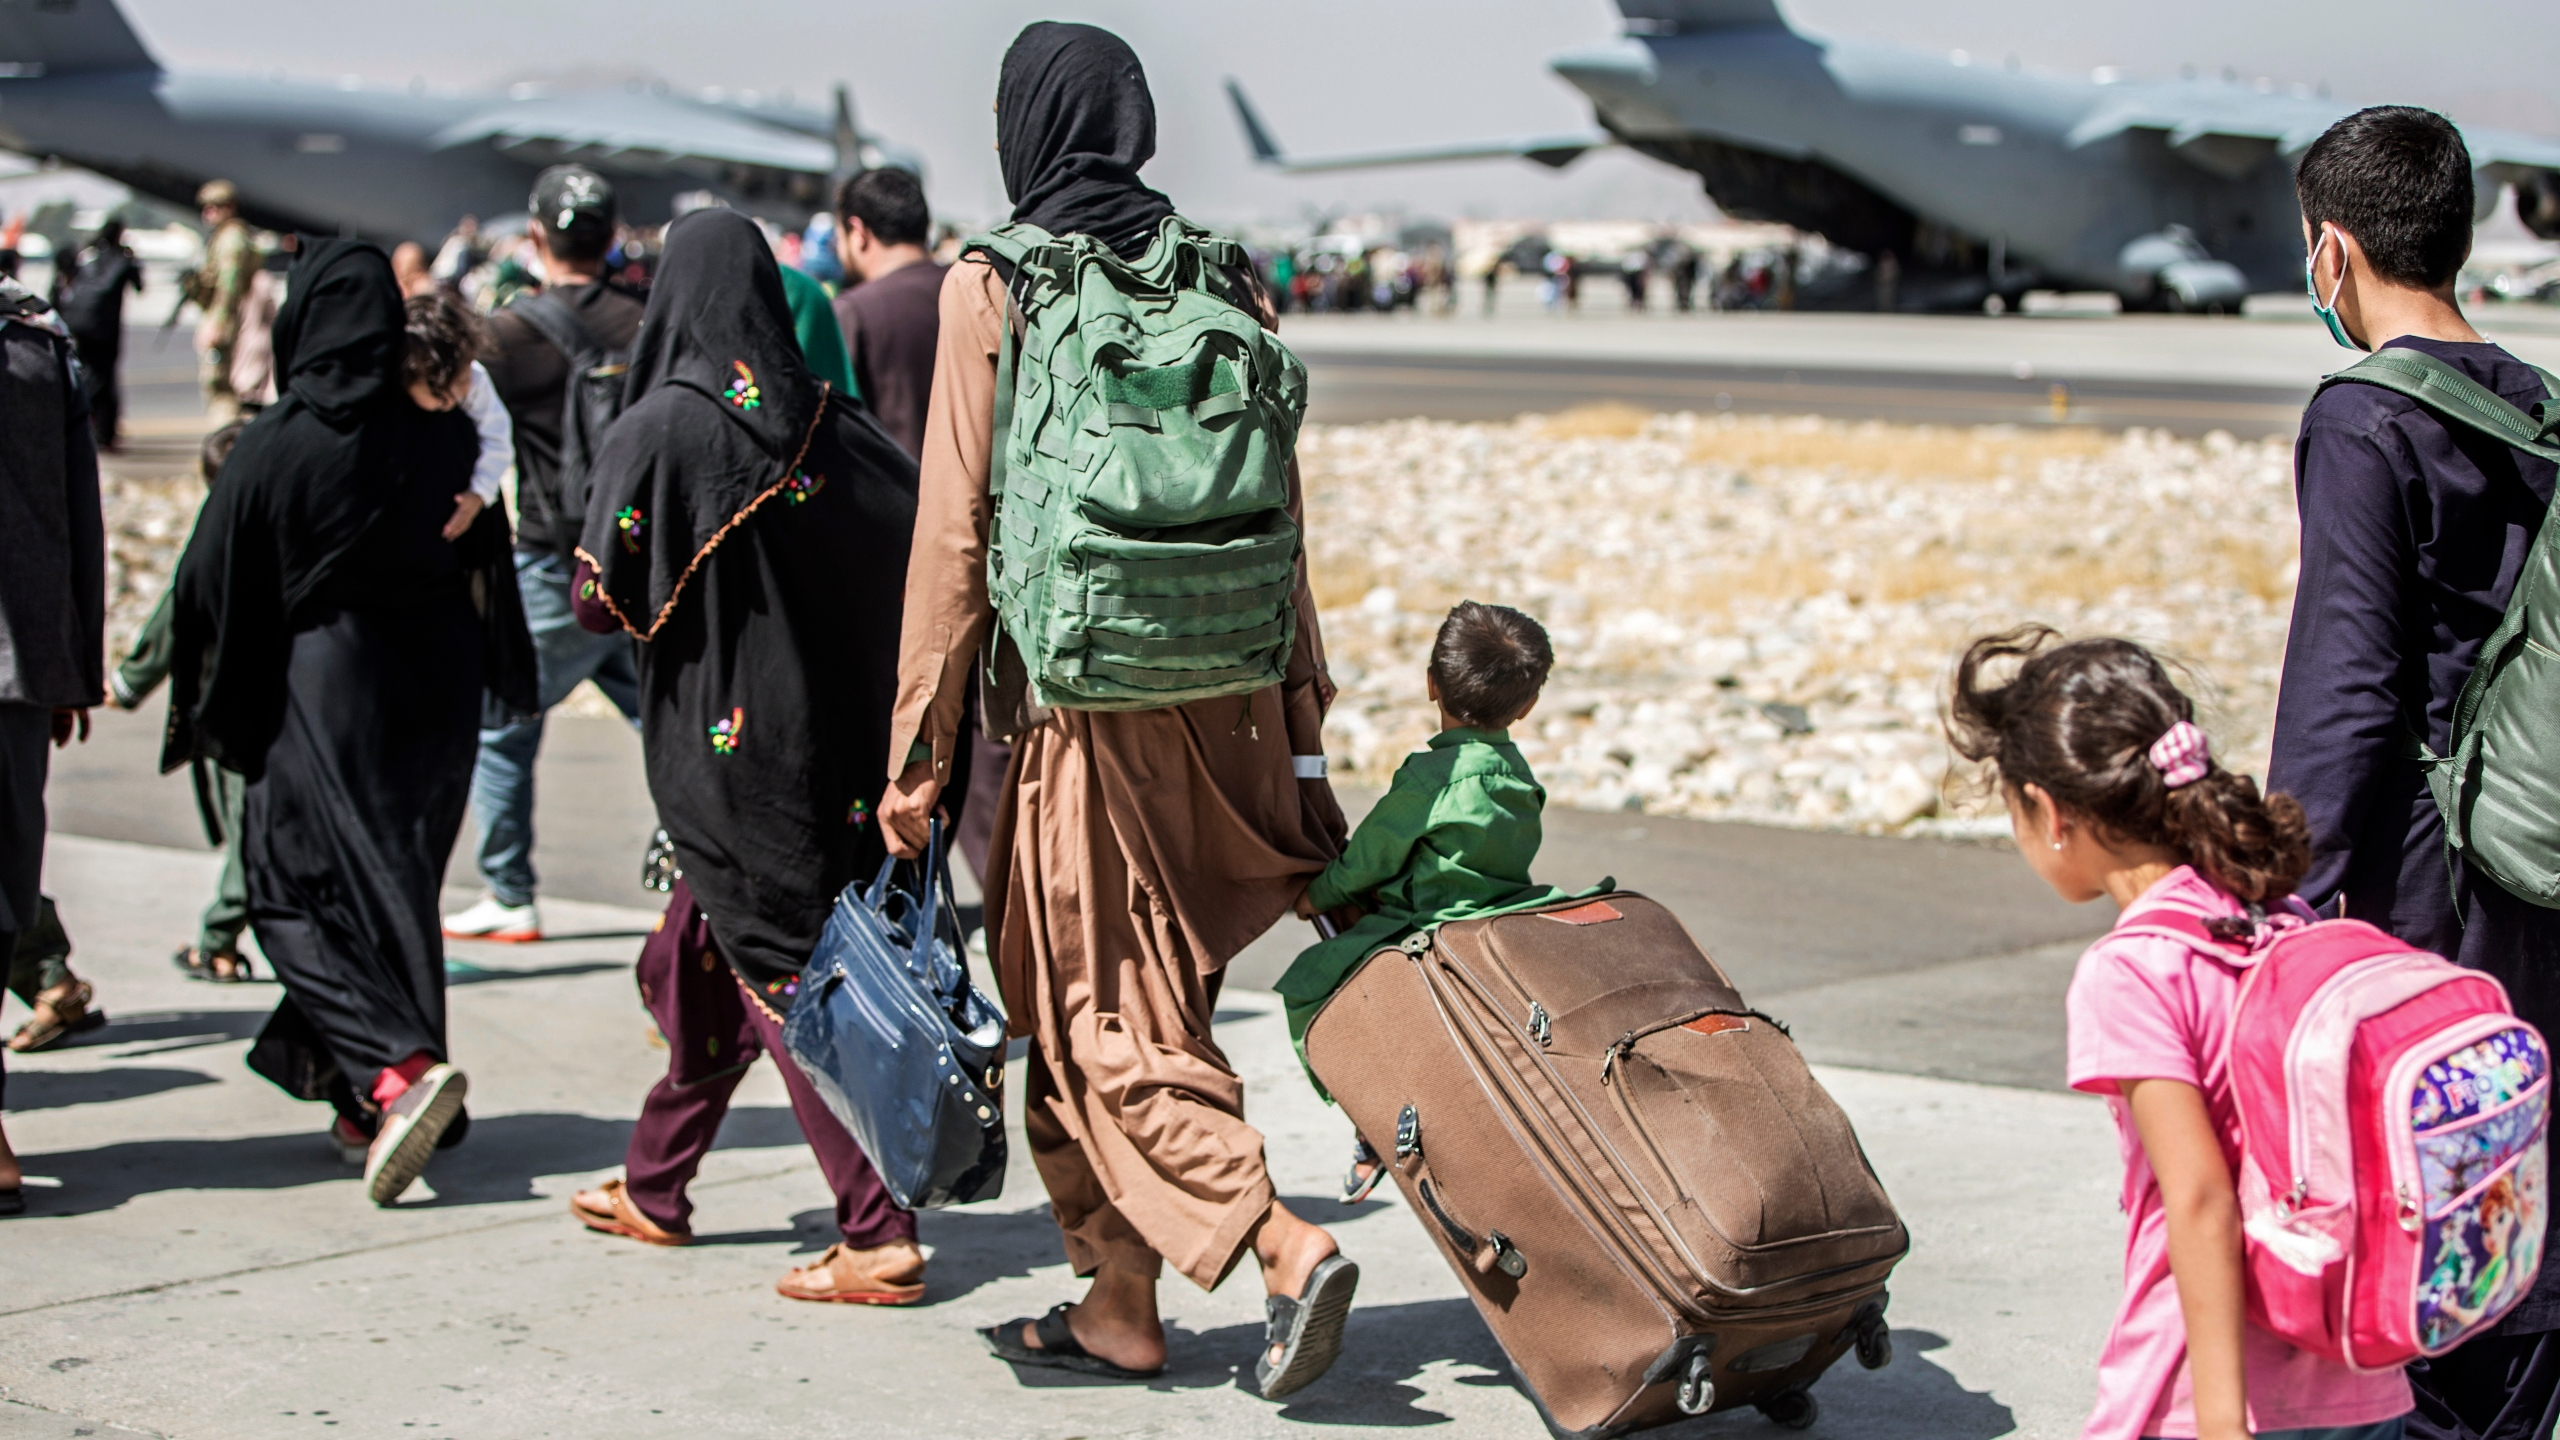 In this Aug. 24, 2021, file photo provided by the U.S. Marine Corps, families walk towards their flight during ongoing evacuations at Hamid Karzai International Airport, in Kabul, Afghanistan. More than 30 California children are stuck in Afghanistan after traveling to the country to see their relatives weeks before the Taliban seized power and US forces left, according to school districts where the kids are enrolled. (Sgt. Samuel Ruiz/U.S. Marine Corps via AP, File)